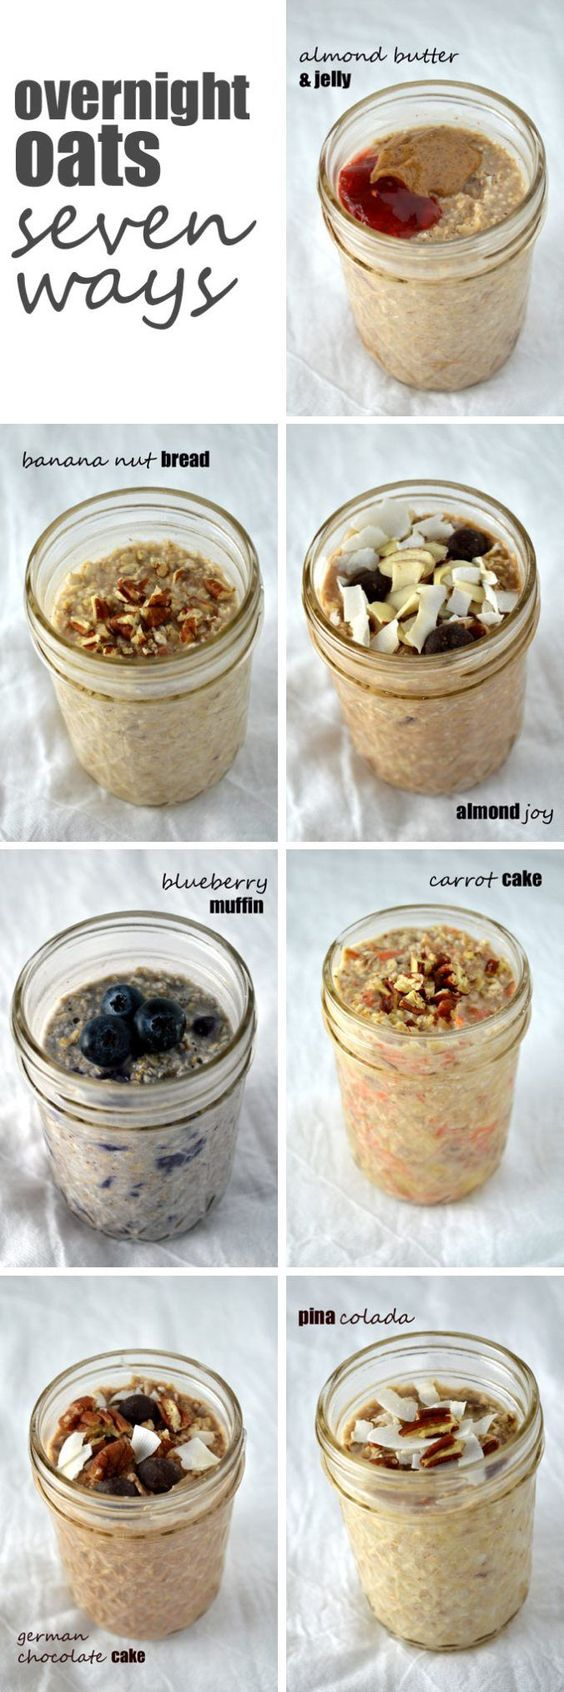 Overnight Oats is definitely a great way to save time when it comes to breakfast. Just grab and go!